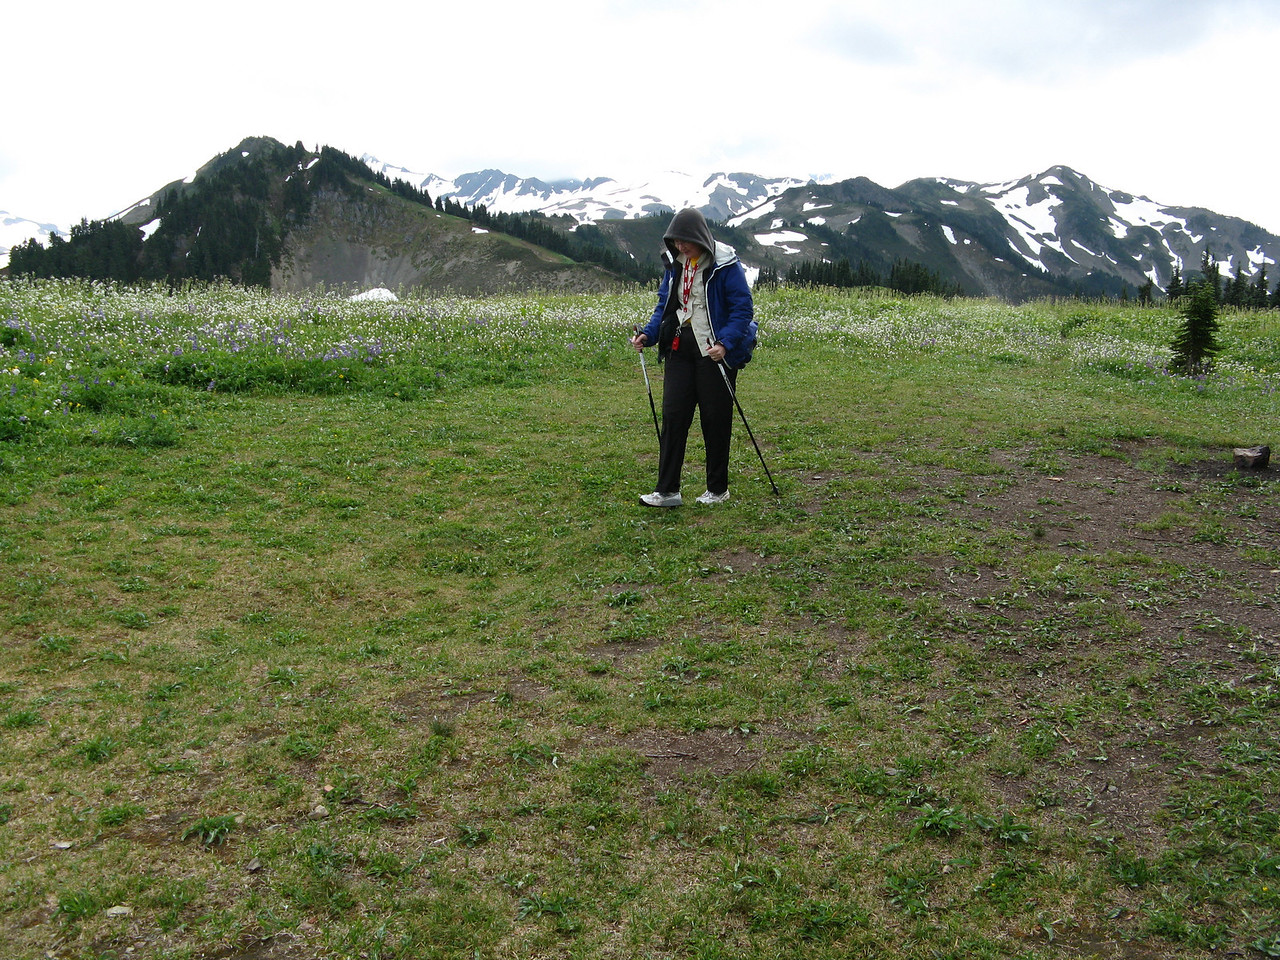 Mary is standing in front of Mount Baker, which is under the shroud of clouds.